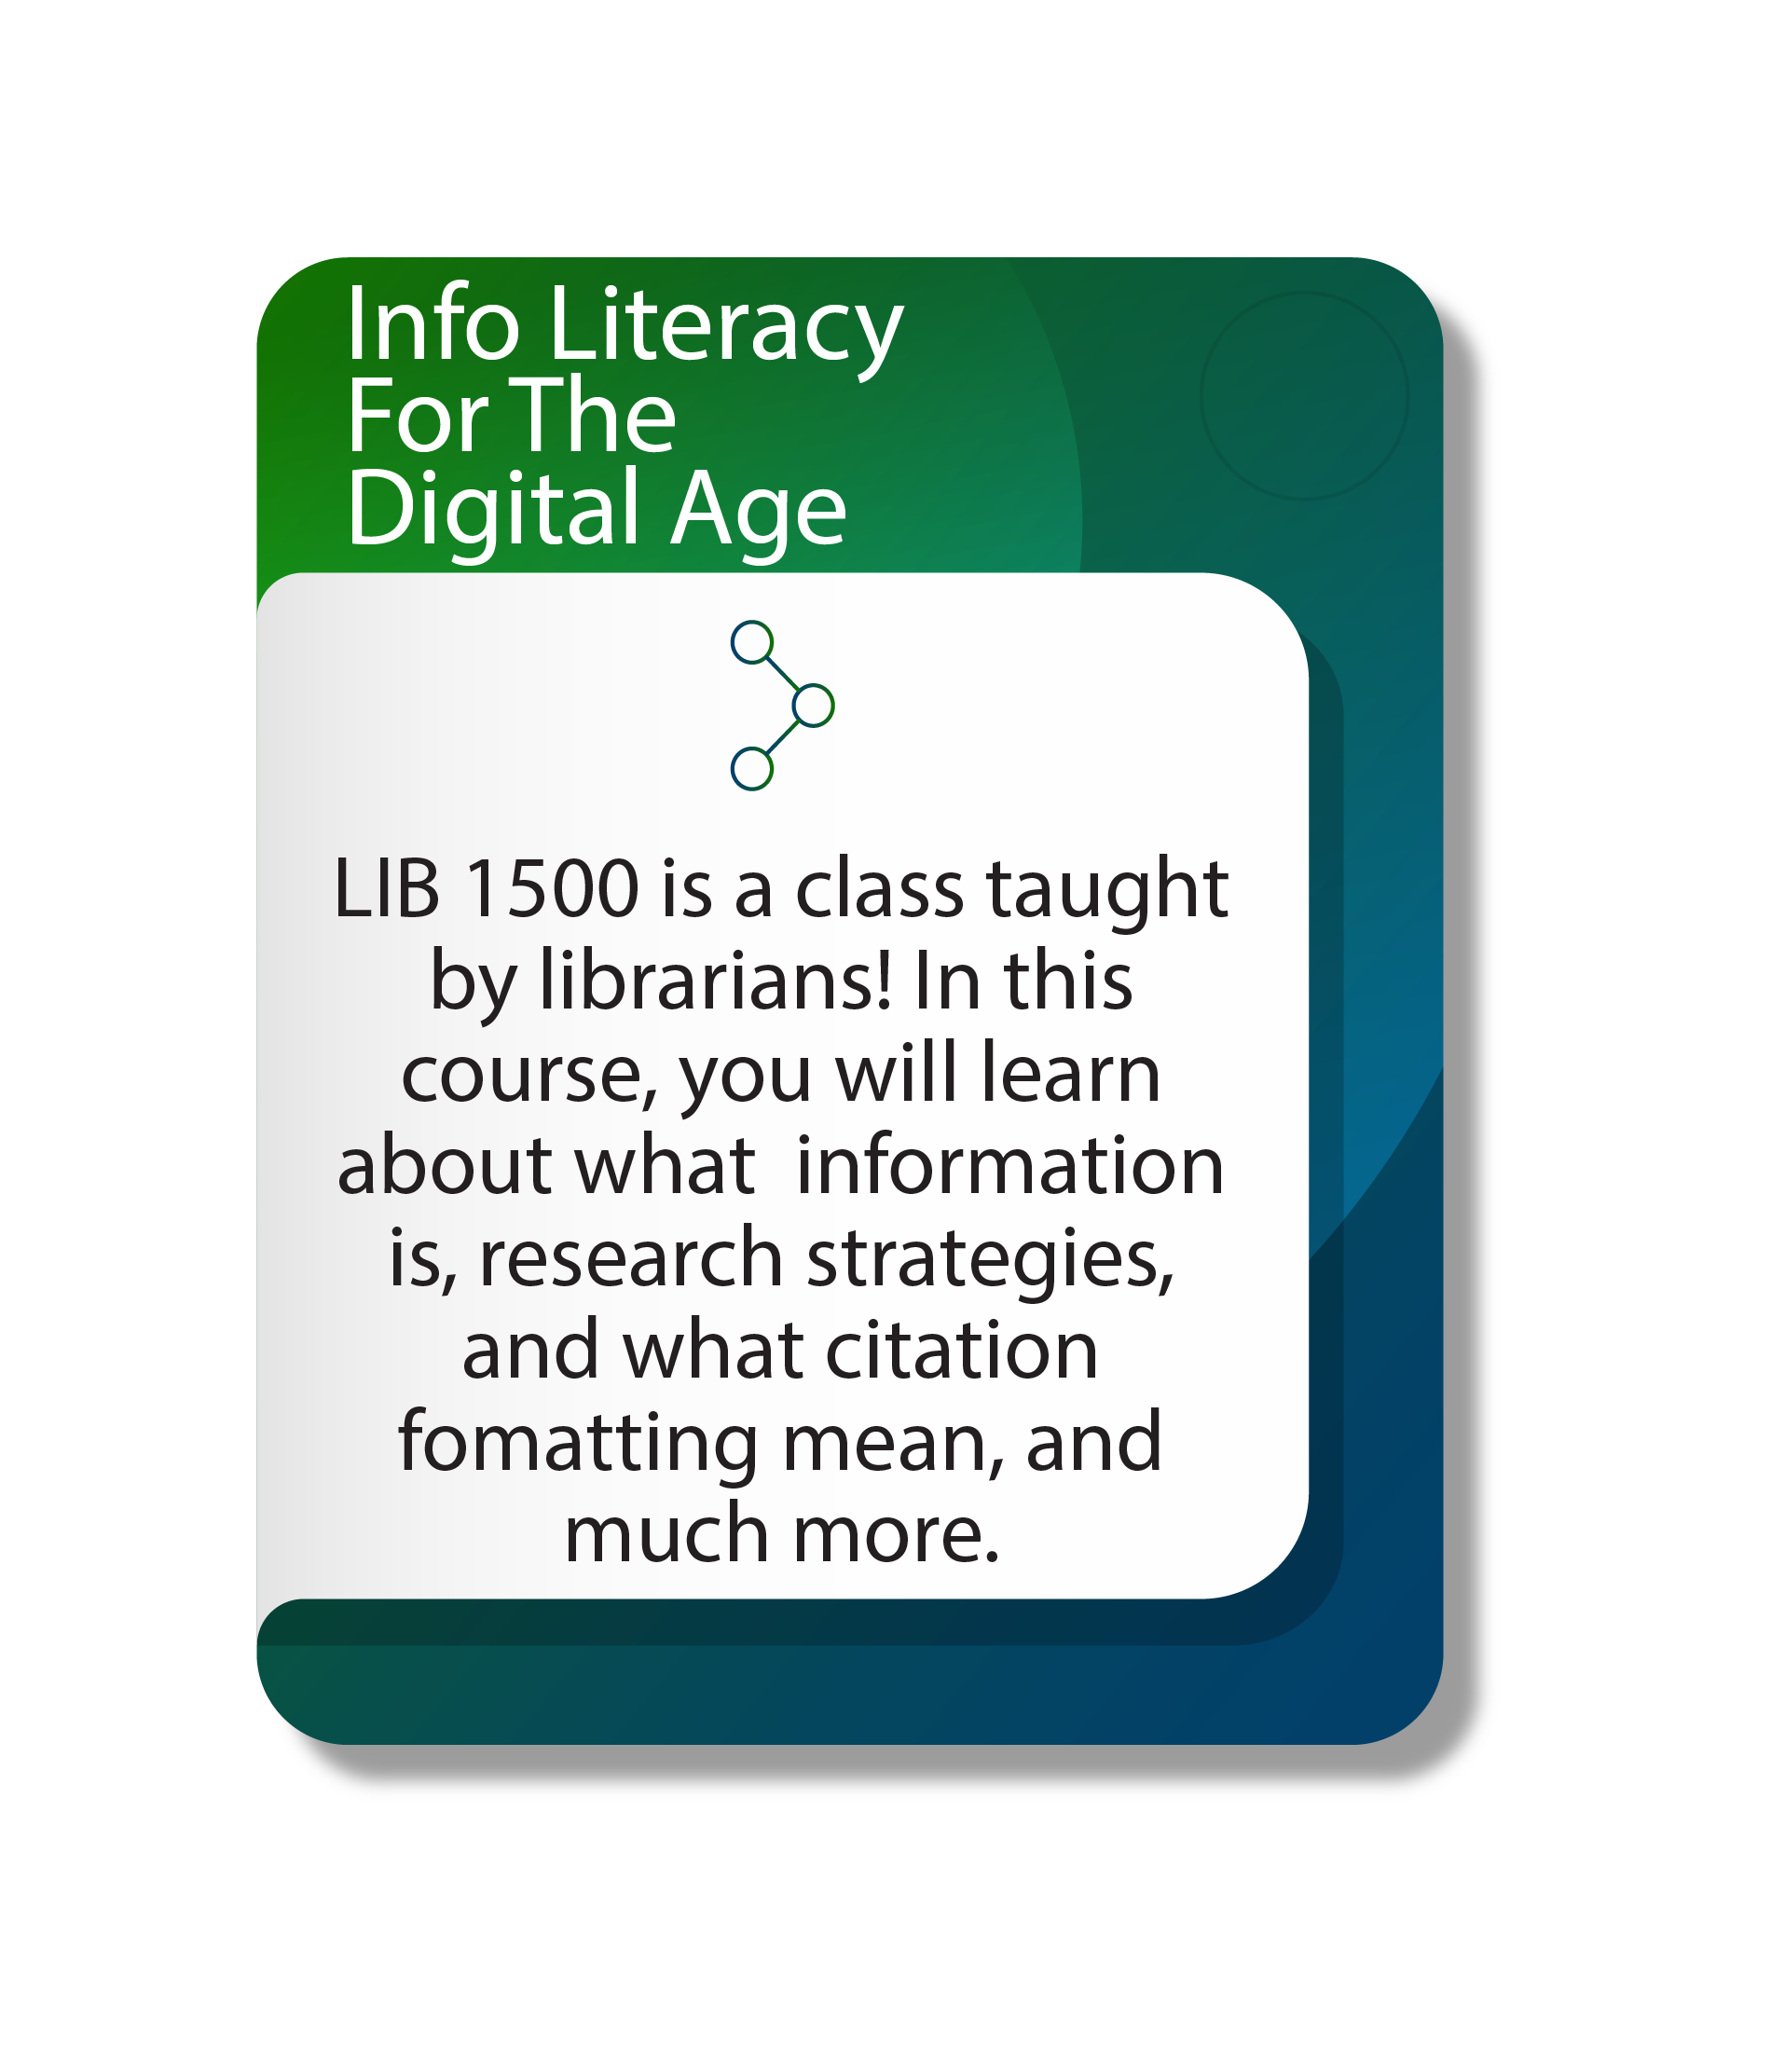 Information literacy for the digital age, lib 1500 is a class taught by librarians! In this course, you will learn about what information is, research strategies, and what citation formatting means, and much more